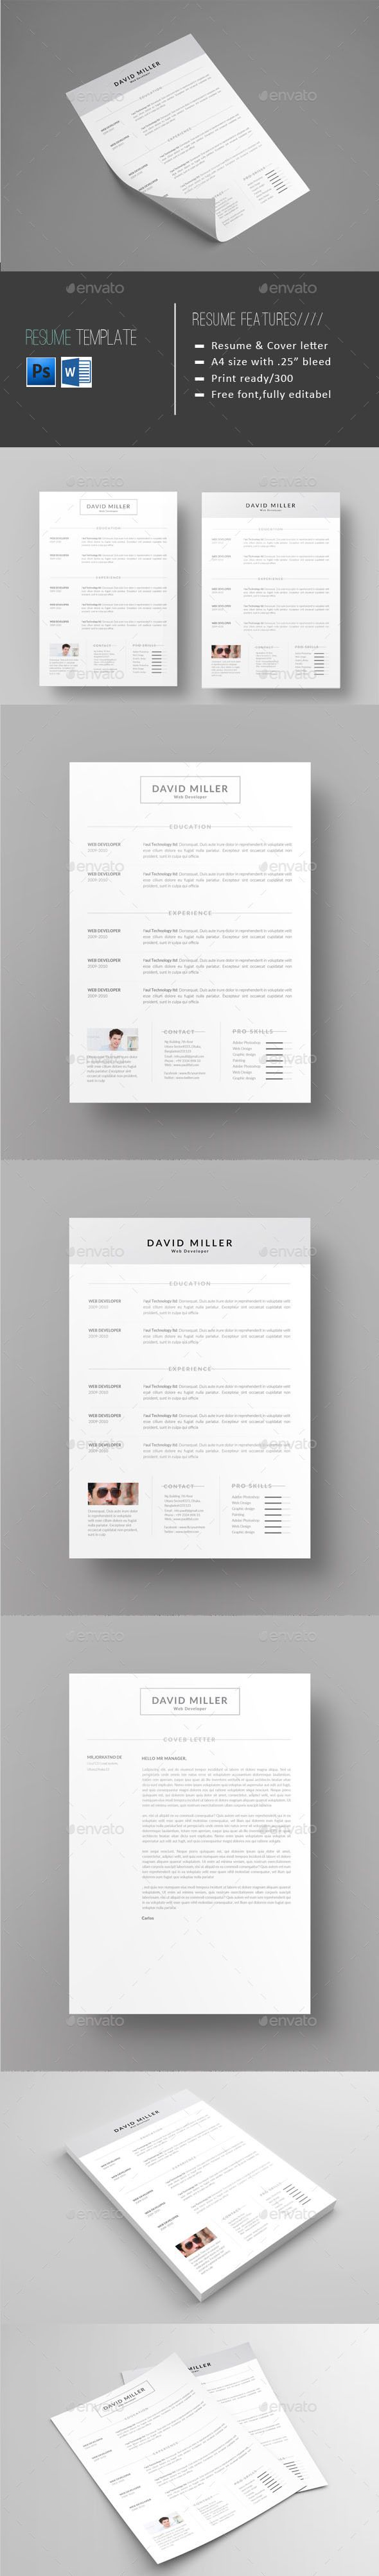 hairdresser resume%0A Resume Design Template  Resumes Stationery Template PSD  Download here   https